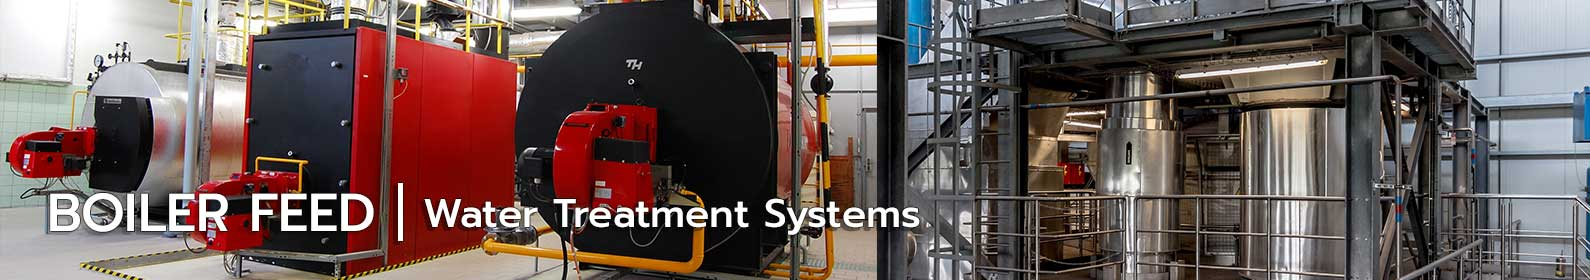 Boiler feed water treatment plants